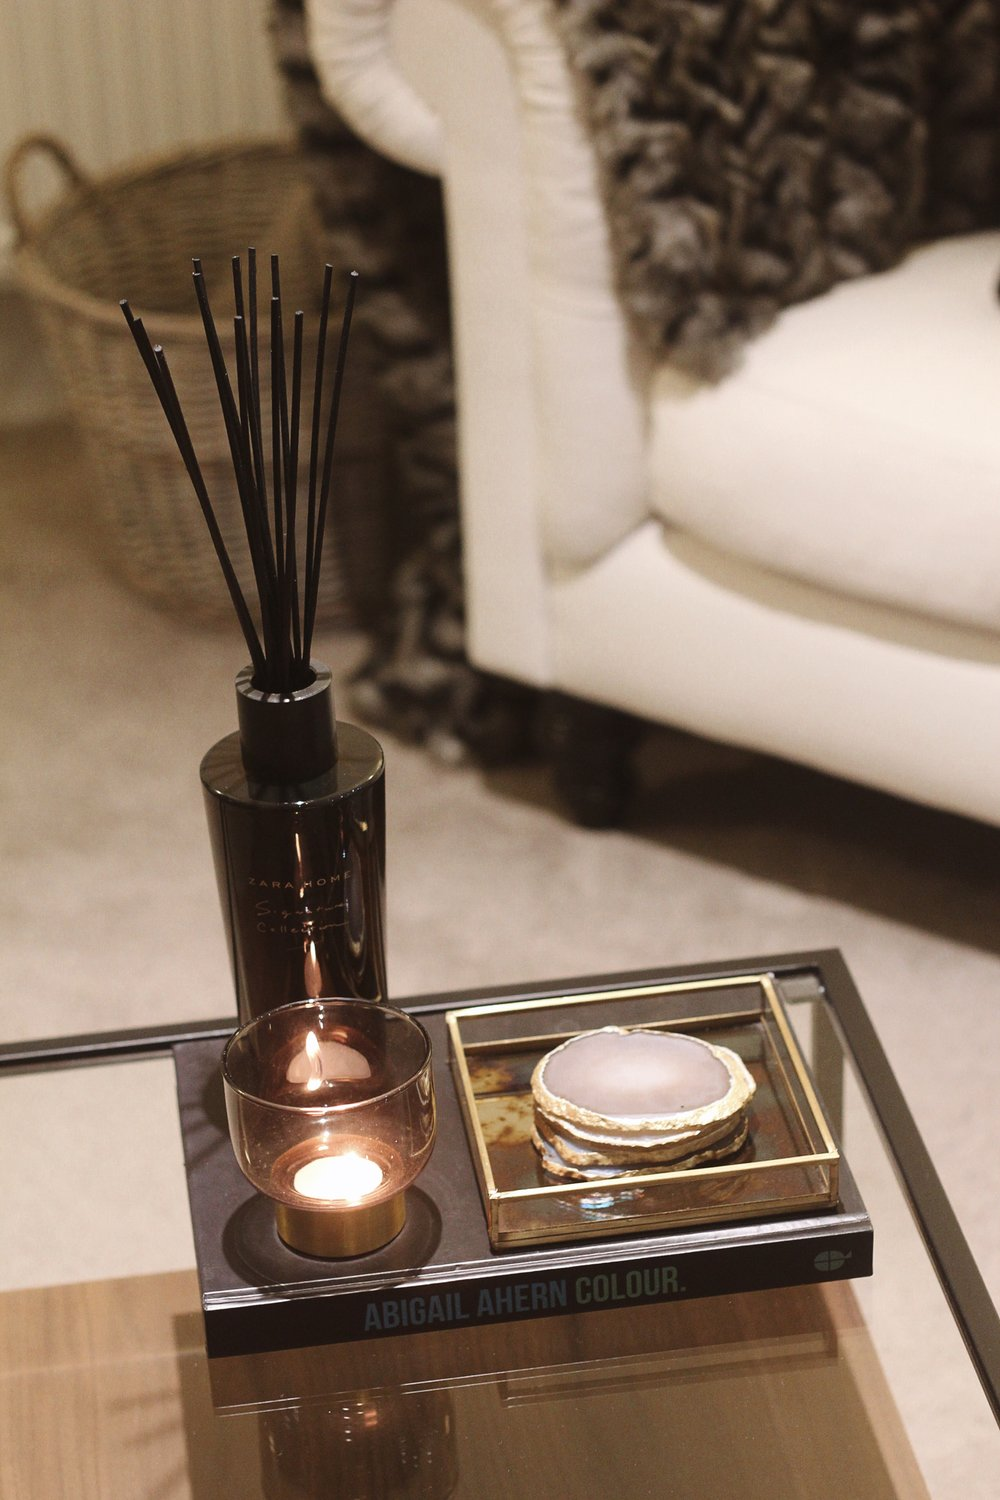 Abigail Ahern Colour  -  John Lewis Iridescent Square Tray  -  Zara Home Signature Collection Diffuser  -  Zara Home Tealight Holder